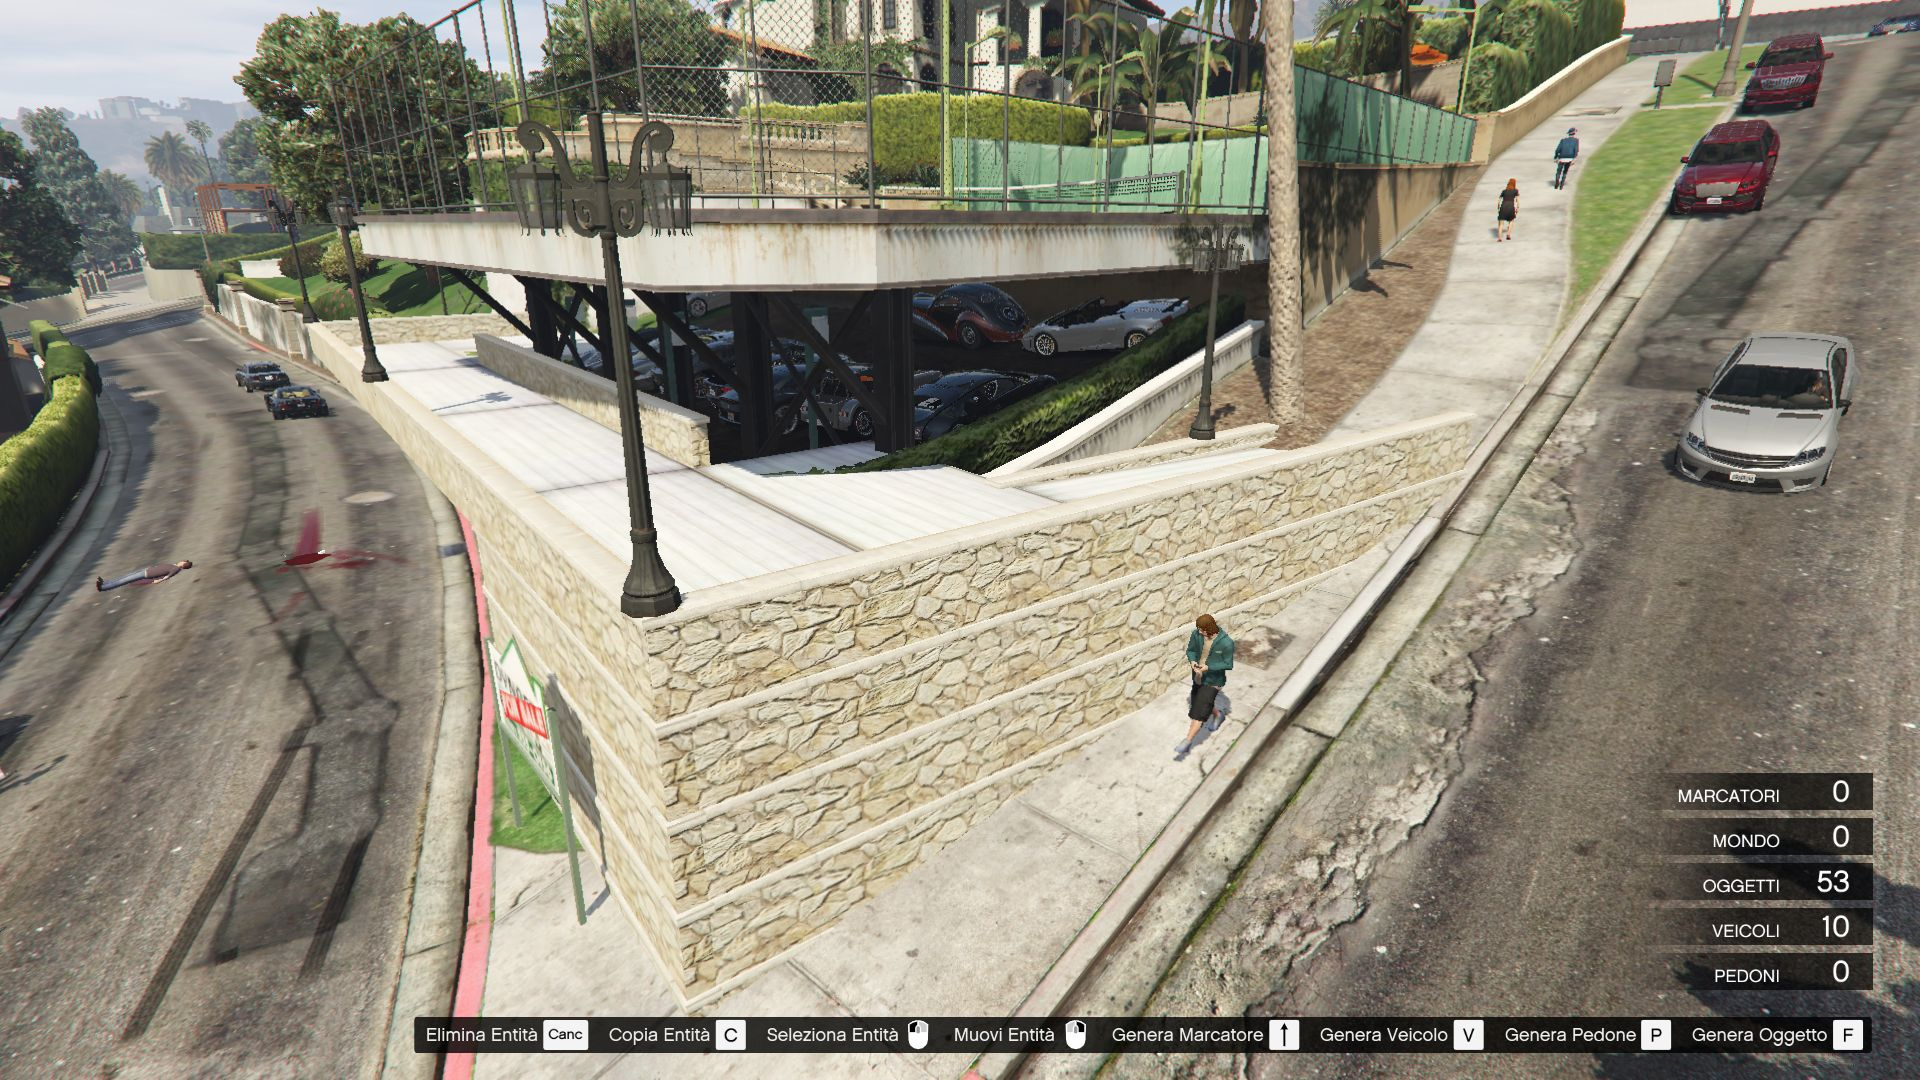 Michael's Garage 1 [Map Editor / SPG] - GTA5-Mods.com on assassins creed map editor, bioshock infinite map editor, crysis 3 map editor, rpg map editor, cod map editor, far cry 3 map editor, mario map editor, crysis 2 map editor,